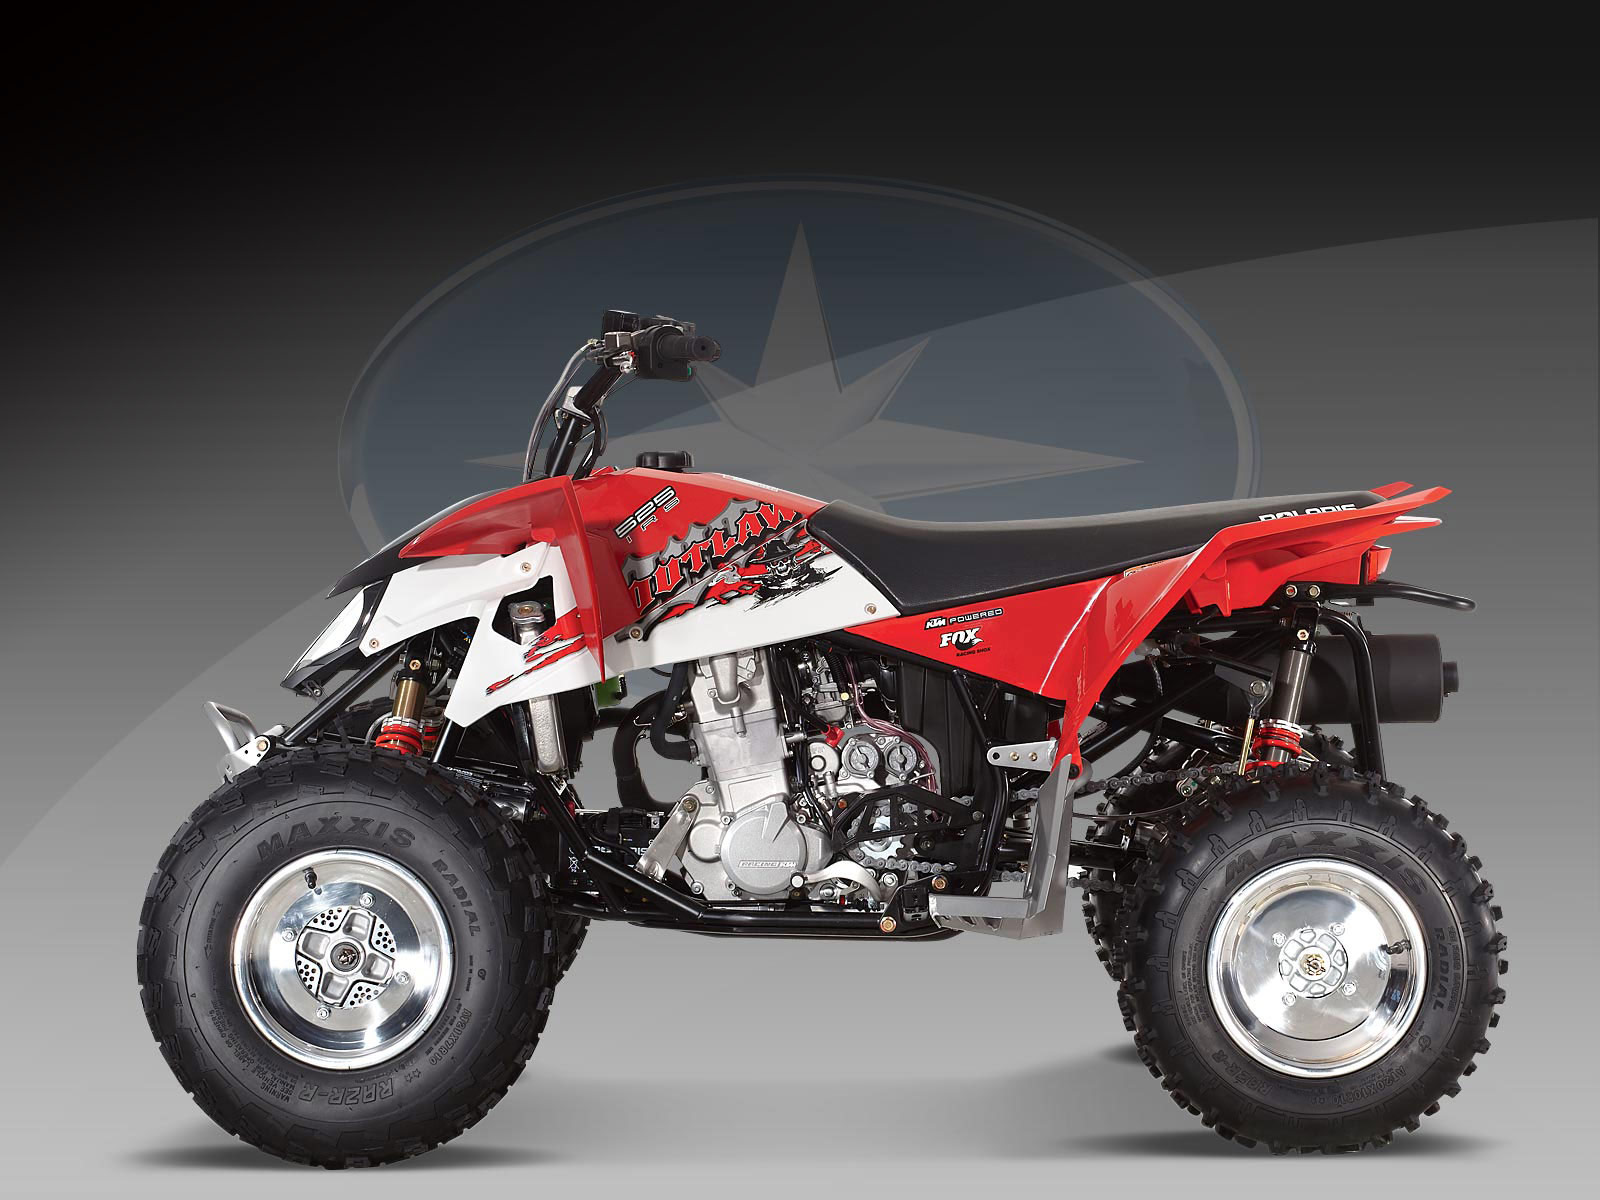 http://3.bp.blogspot.com/-ORXDWdzgDoo/TulteXY07kI/AAAAAAAAKvA/Zia5nrzp0EI/s1600/2010-Polaris-Outlaw-525-IRS-ATV-wallpapers_2.jpg